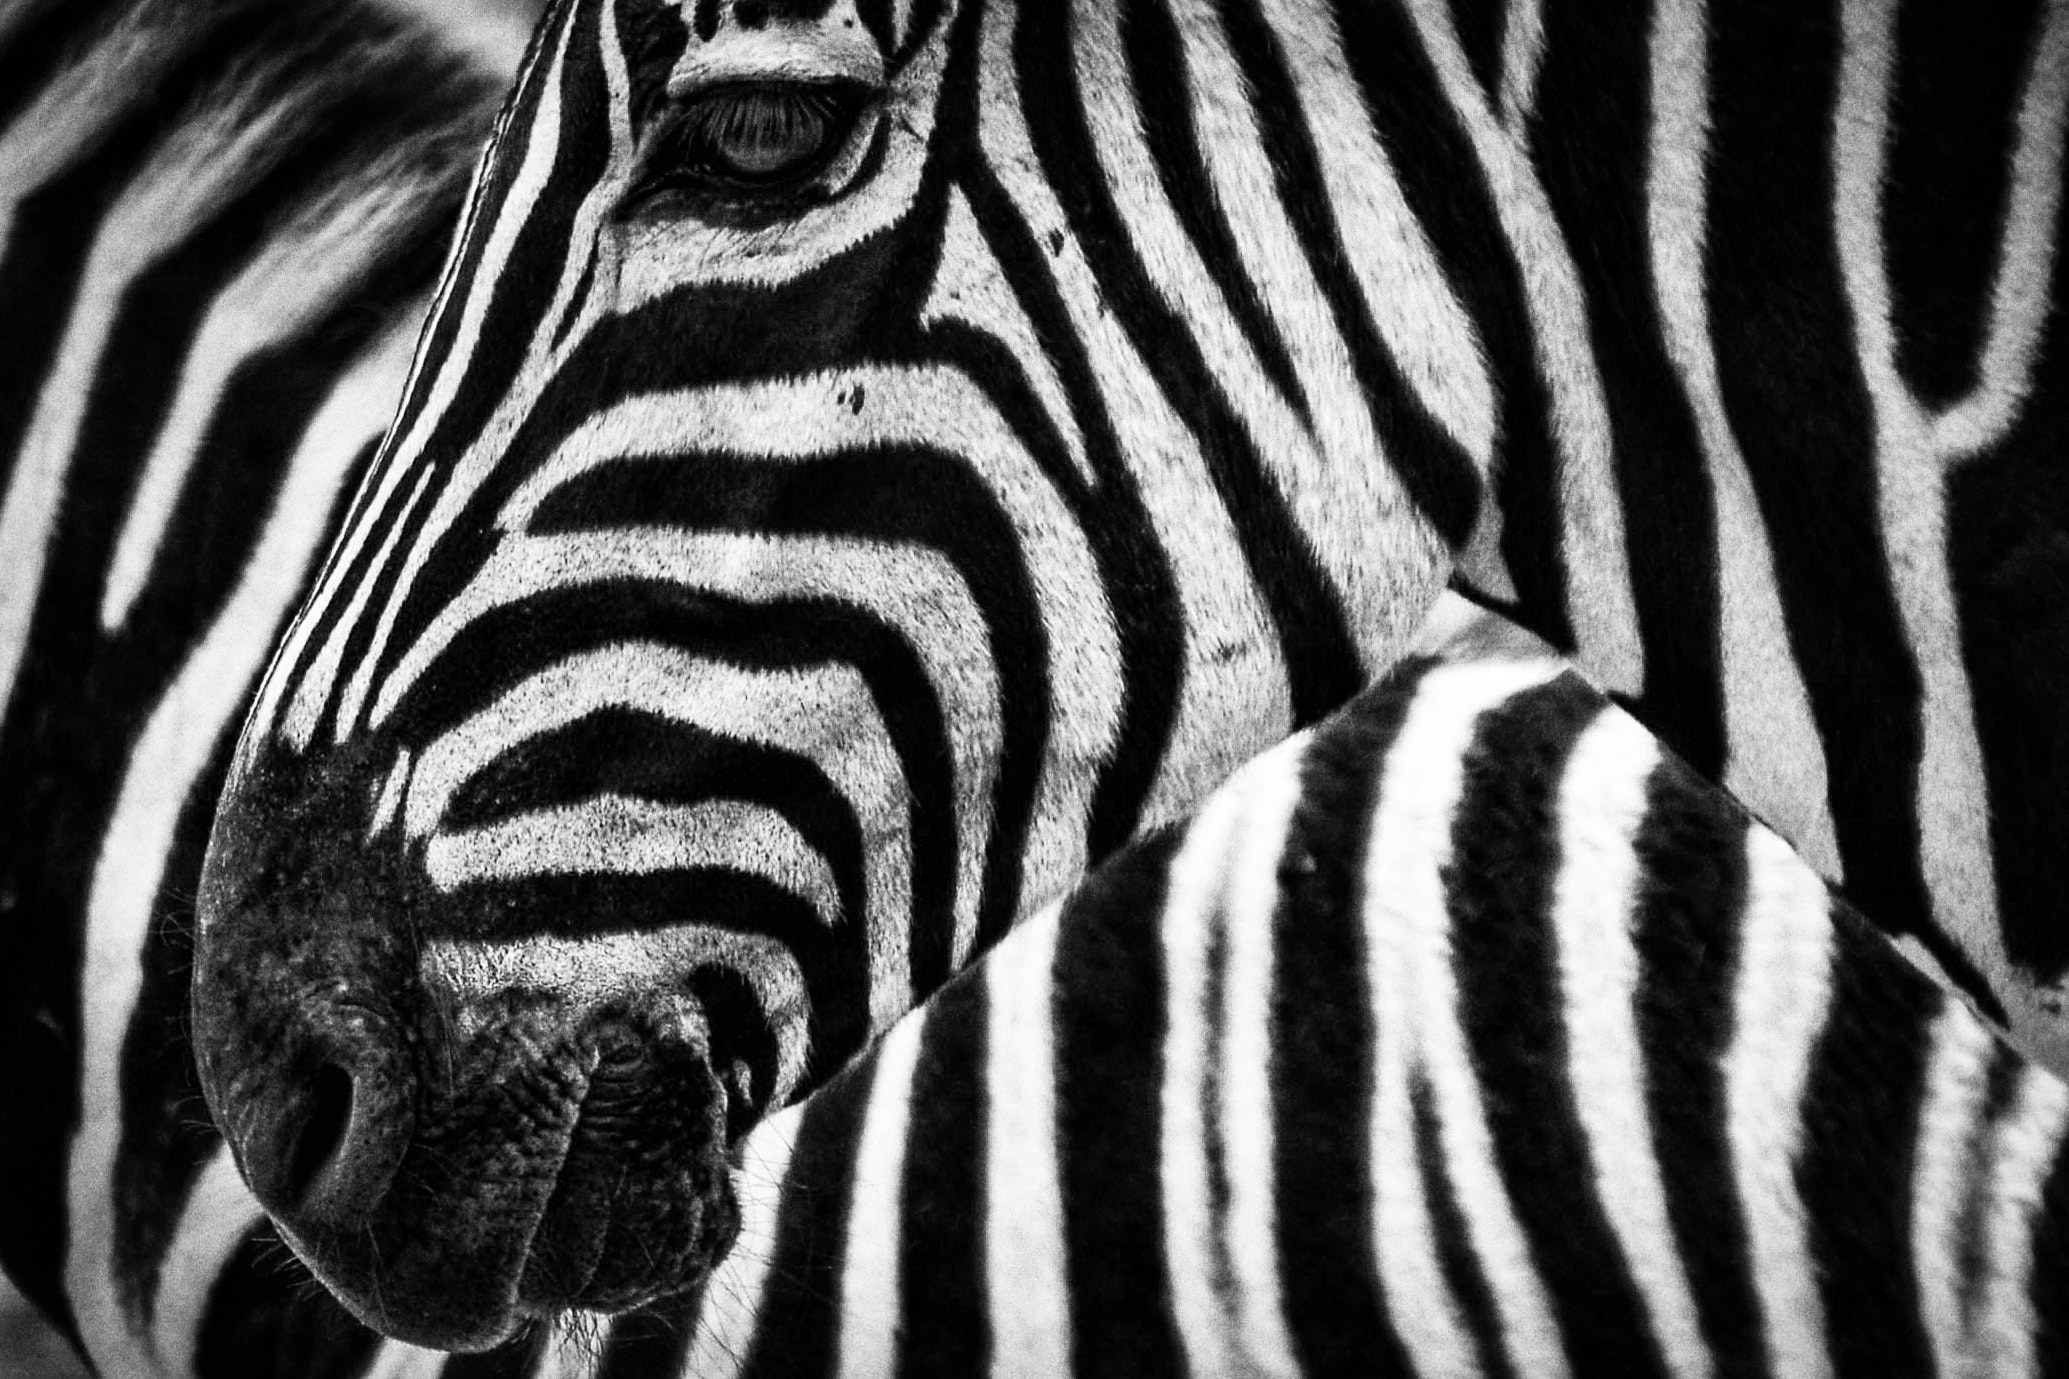 animal-animal-photography-black-and-white-47349